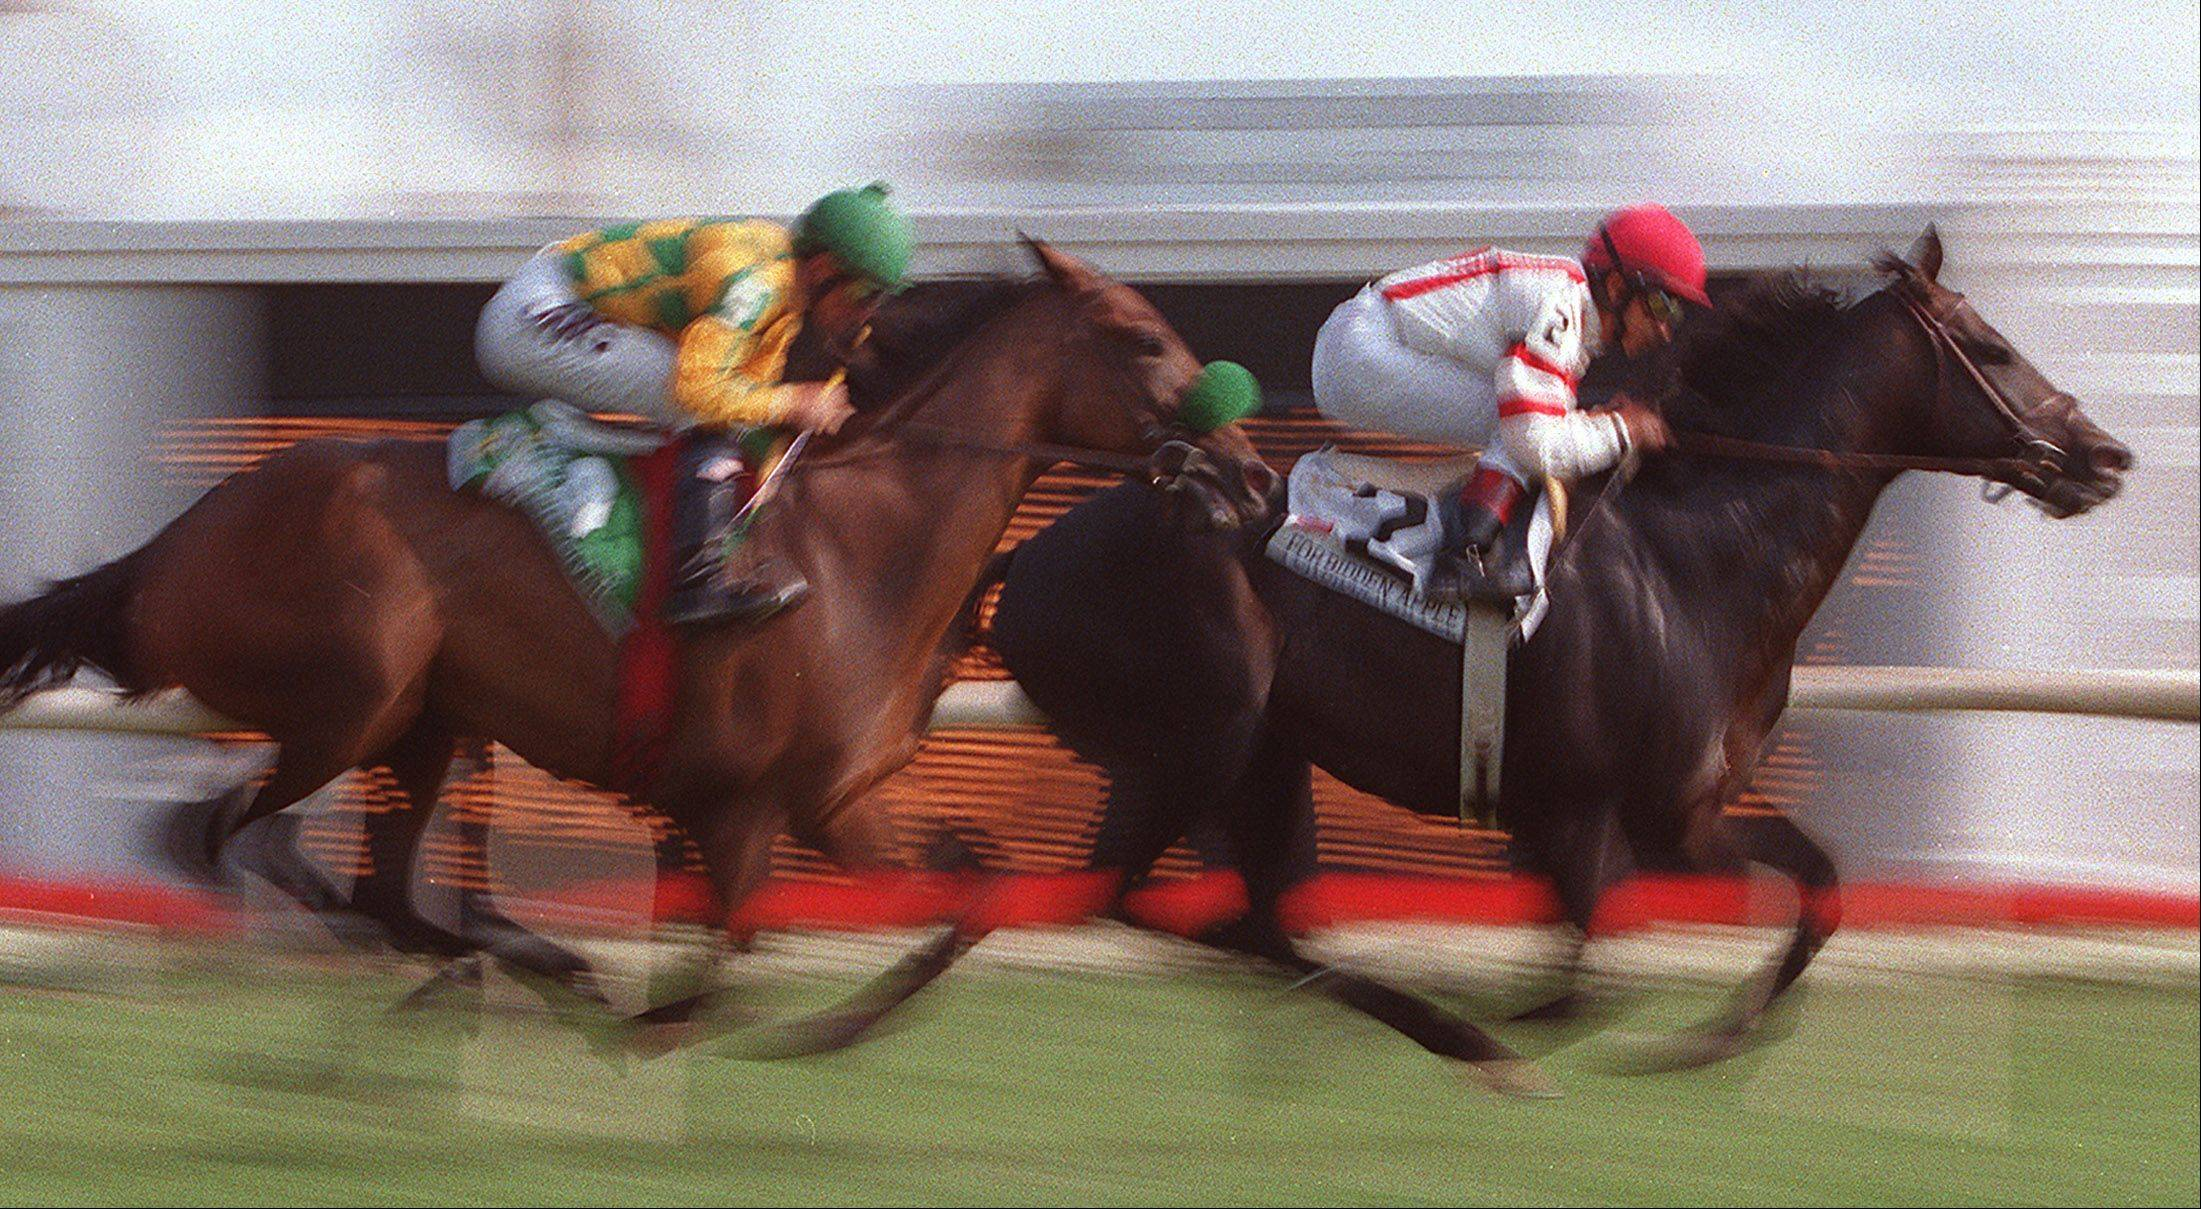 The Number 2 horse, Forbidden Apple battles against Number 5 Mystery Giver in the early stages of the 2002 Arlington Million.